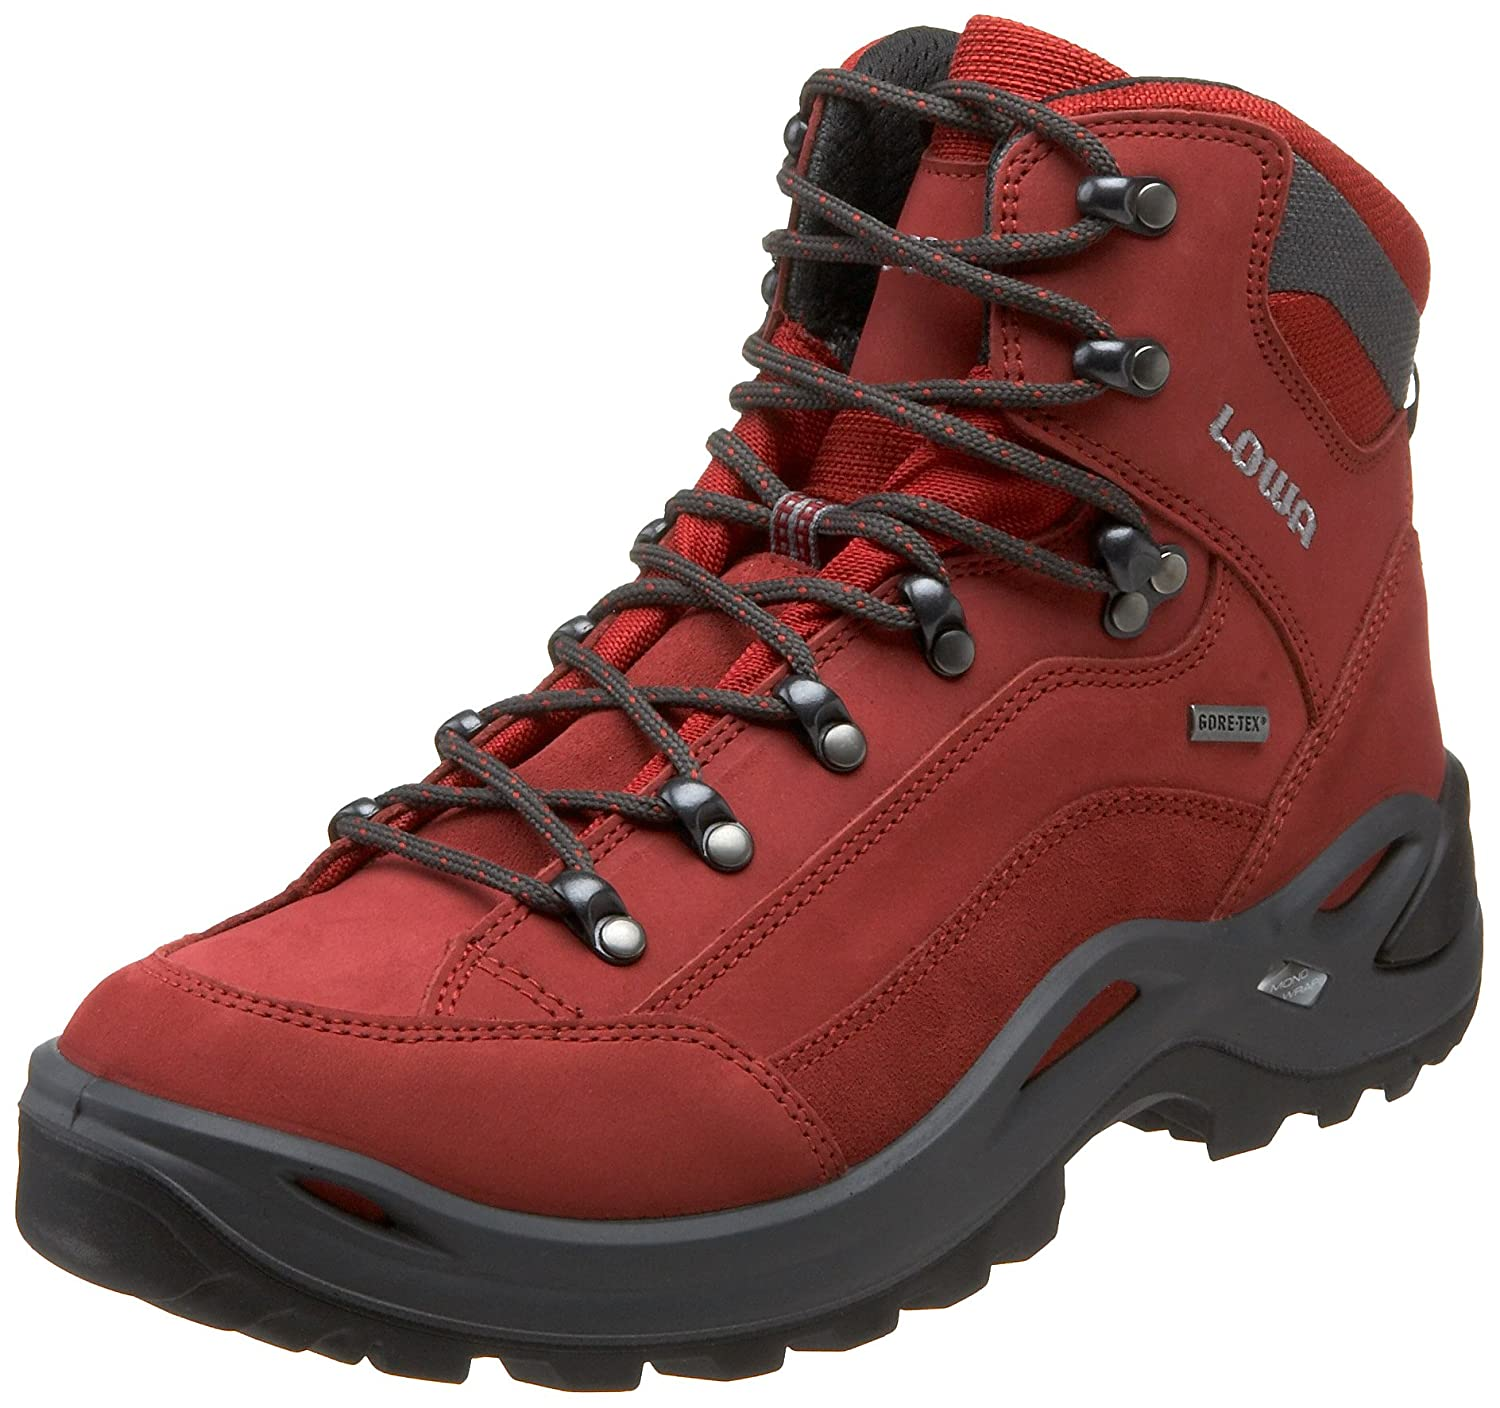 lowa women 39 s renegade gtx mid hiking boot red 8 5 m us. Black Bedroom Furniture Sets. Home Design Ideas